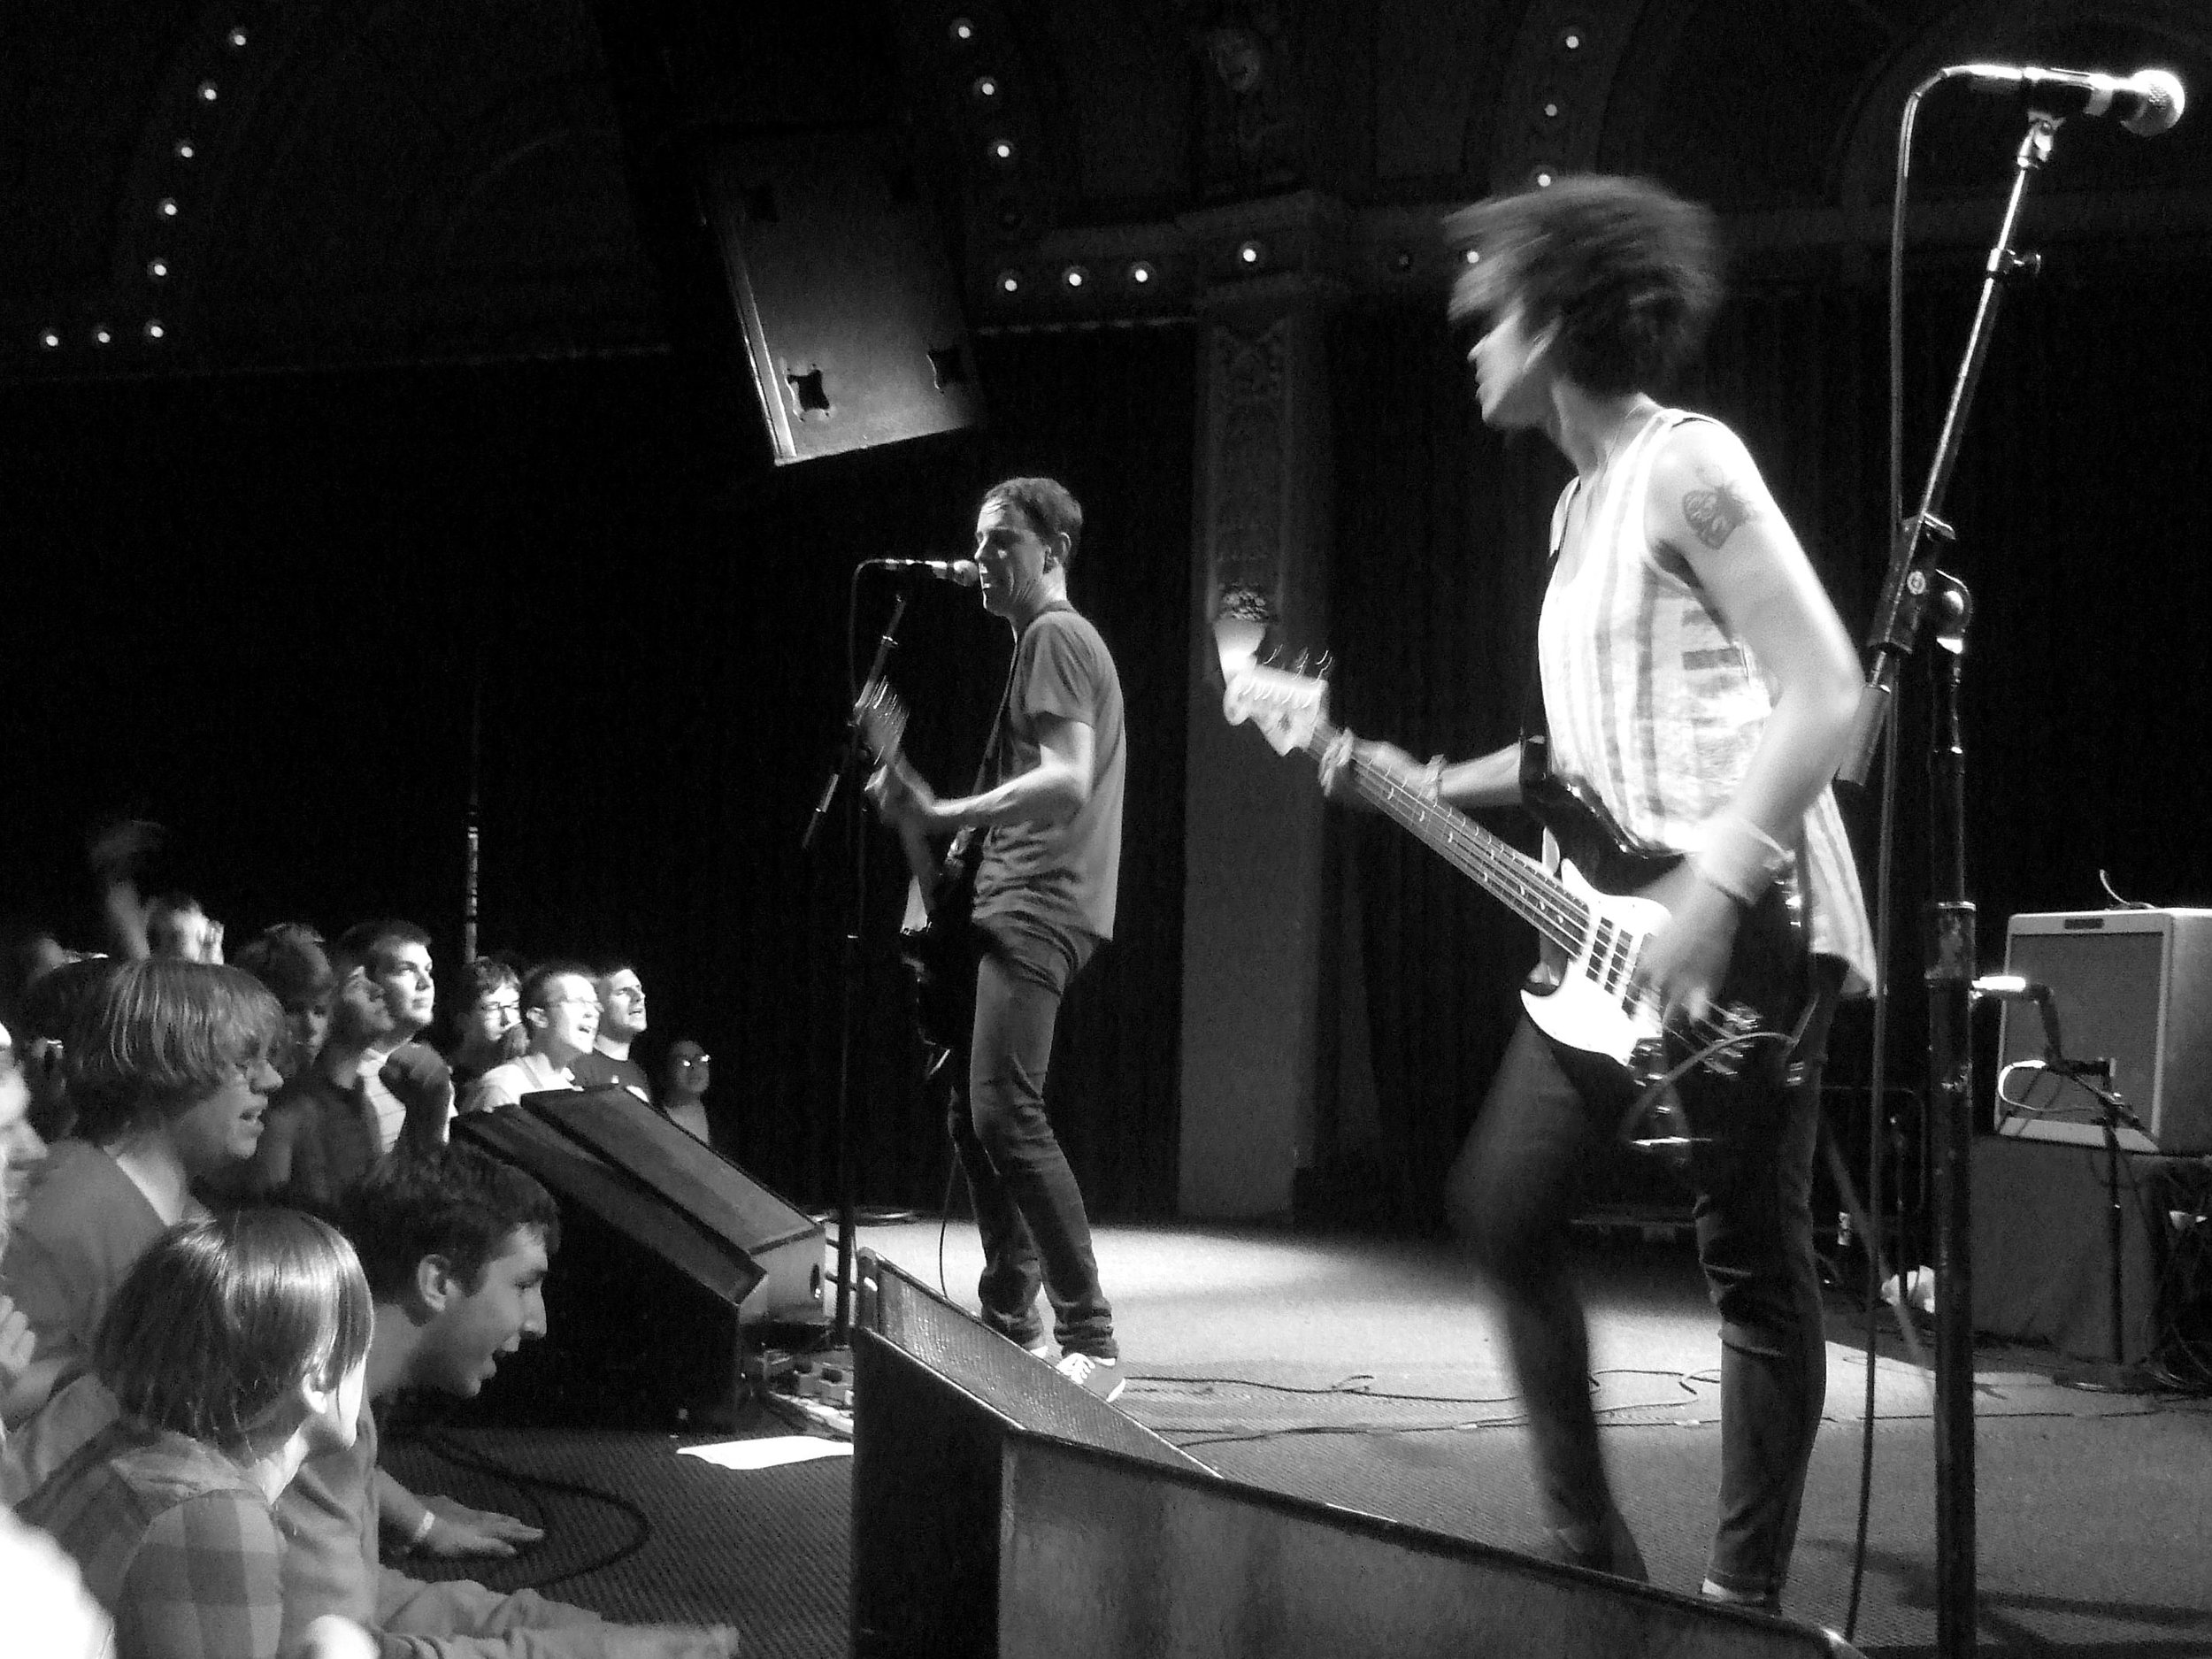 The Thermals - September 9, 2010 - Portland, OR, USA